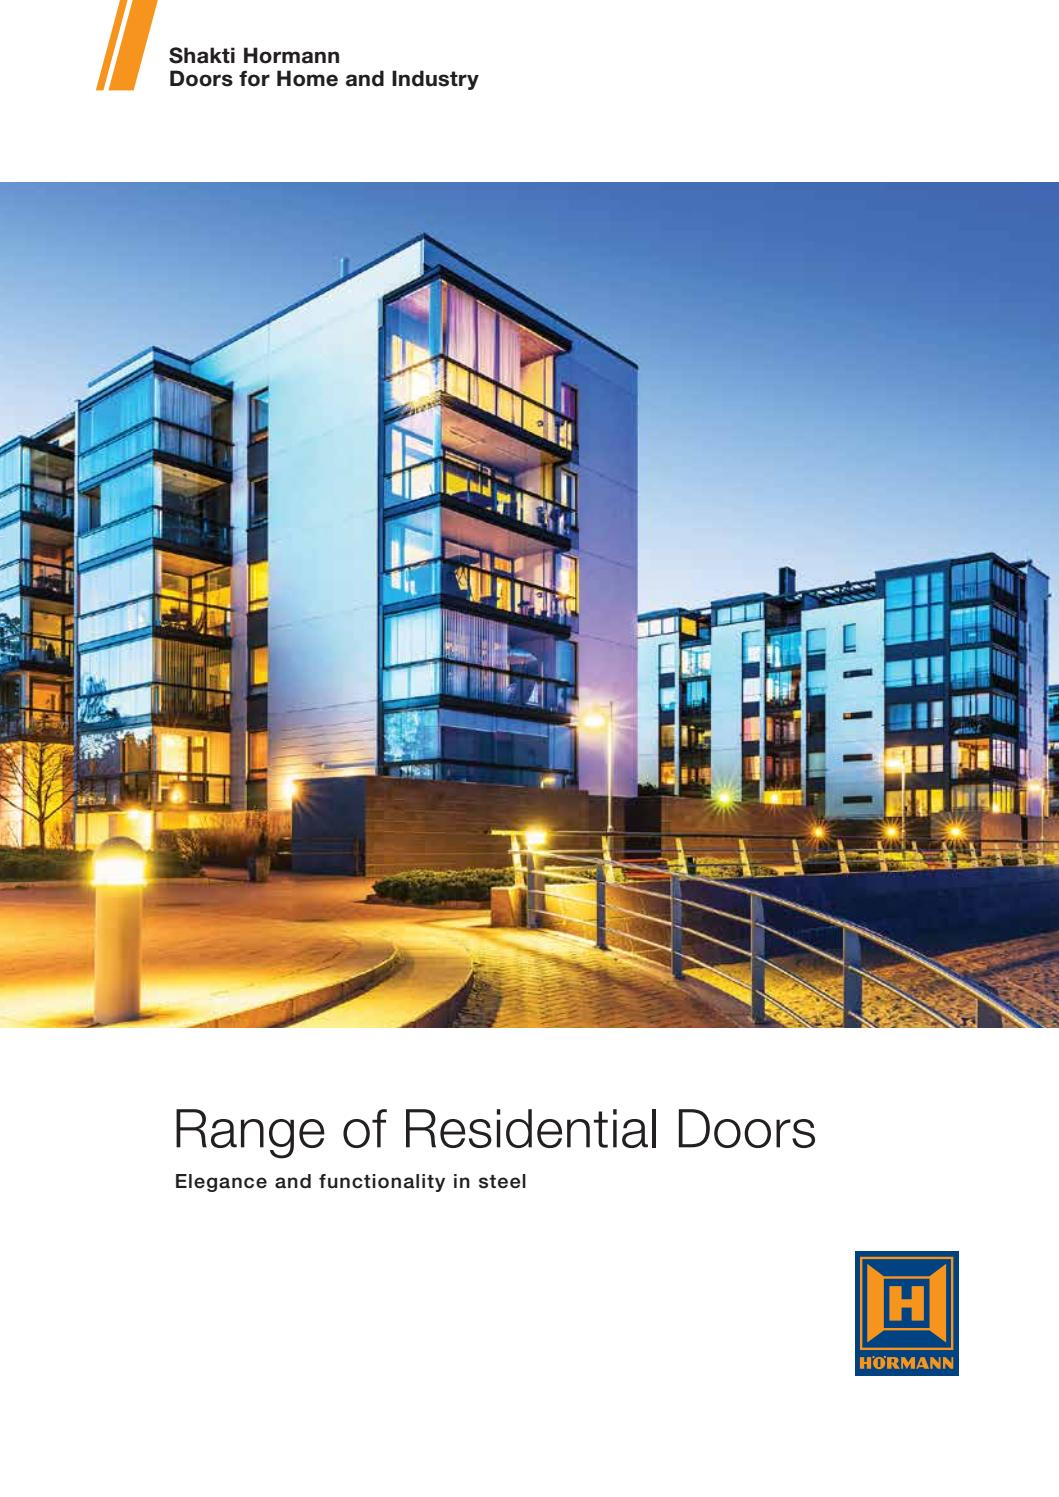 Shakti Hormann Doors for Home and Industry|Steel doors in Hyderabad|residential doors u0026 windows by Active Group - issuu  sc 1 st  Issuu & Shakti Hormann Doors for Home and Industry|Steel doors in ... pezcame.com